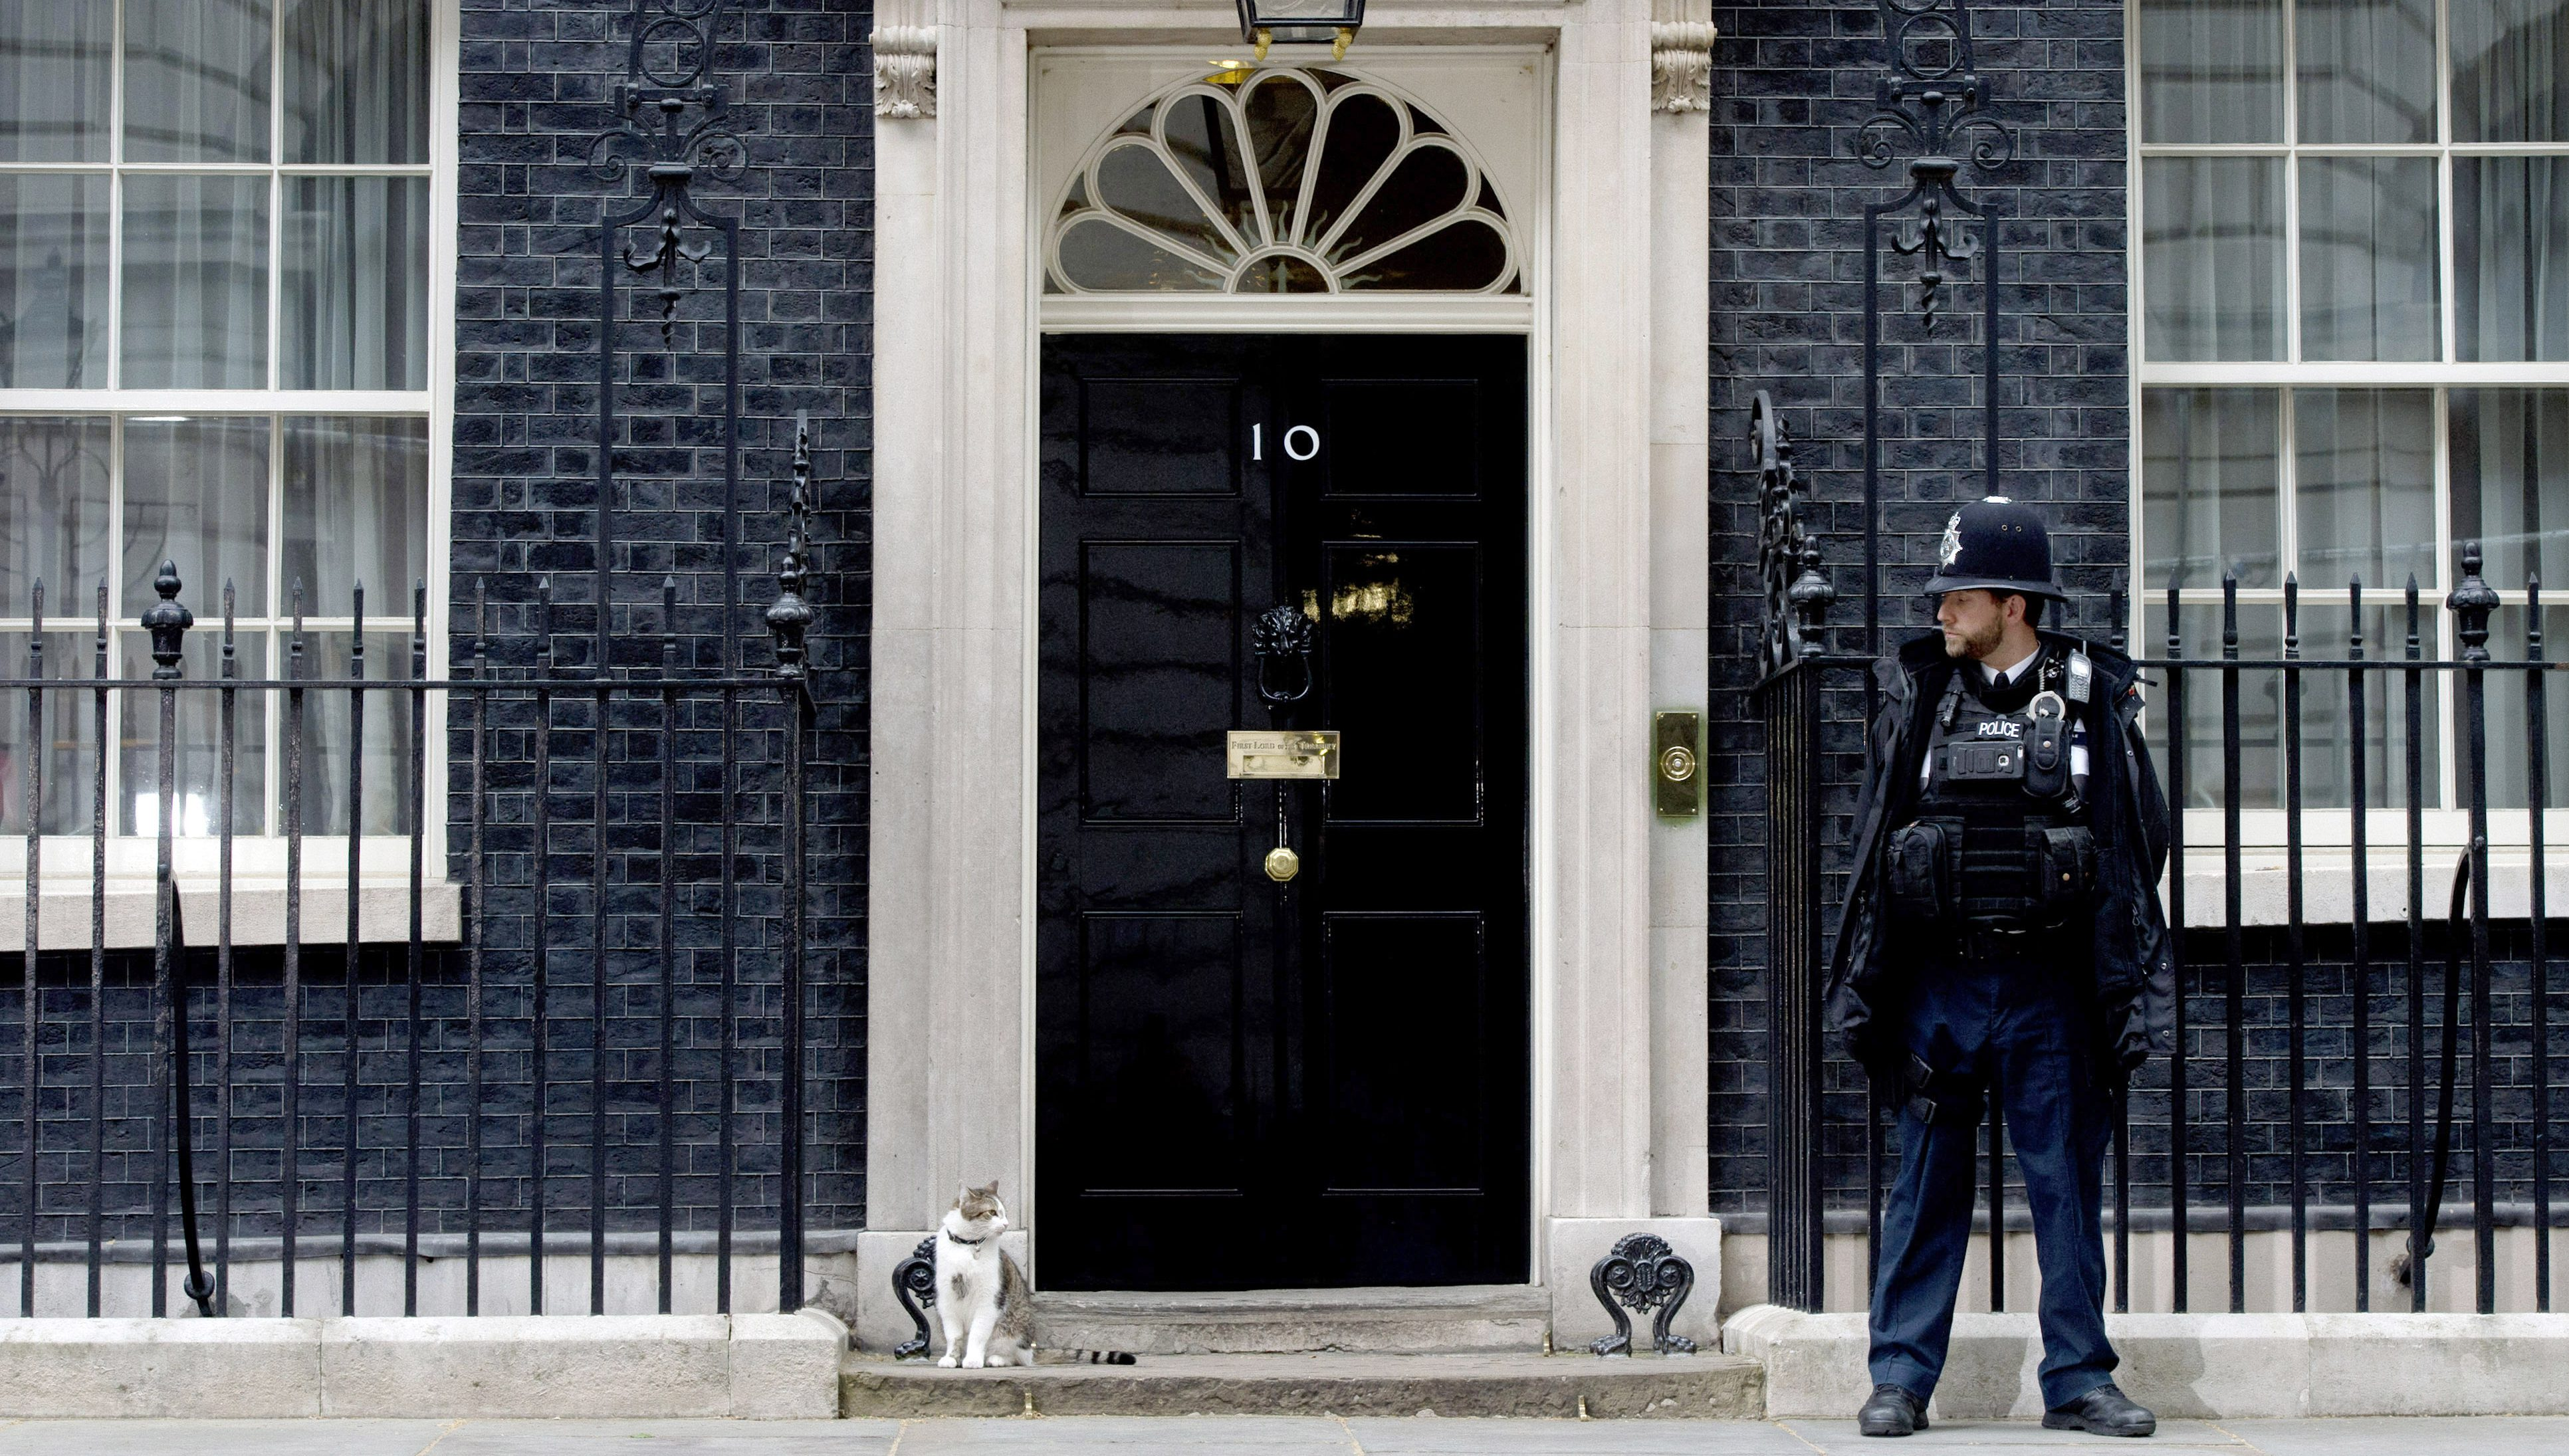 Chief Mouser to the Cabinet Office, Larry